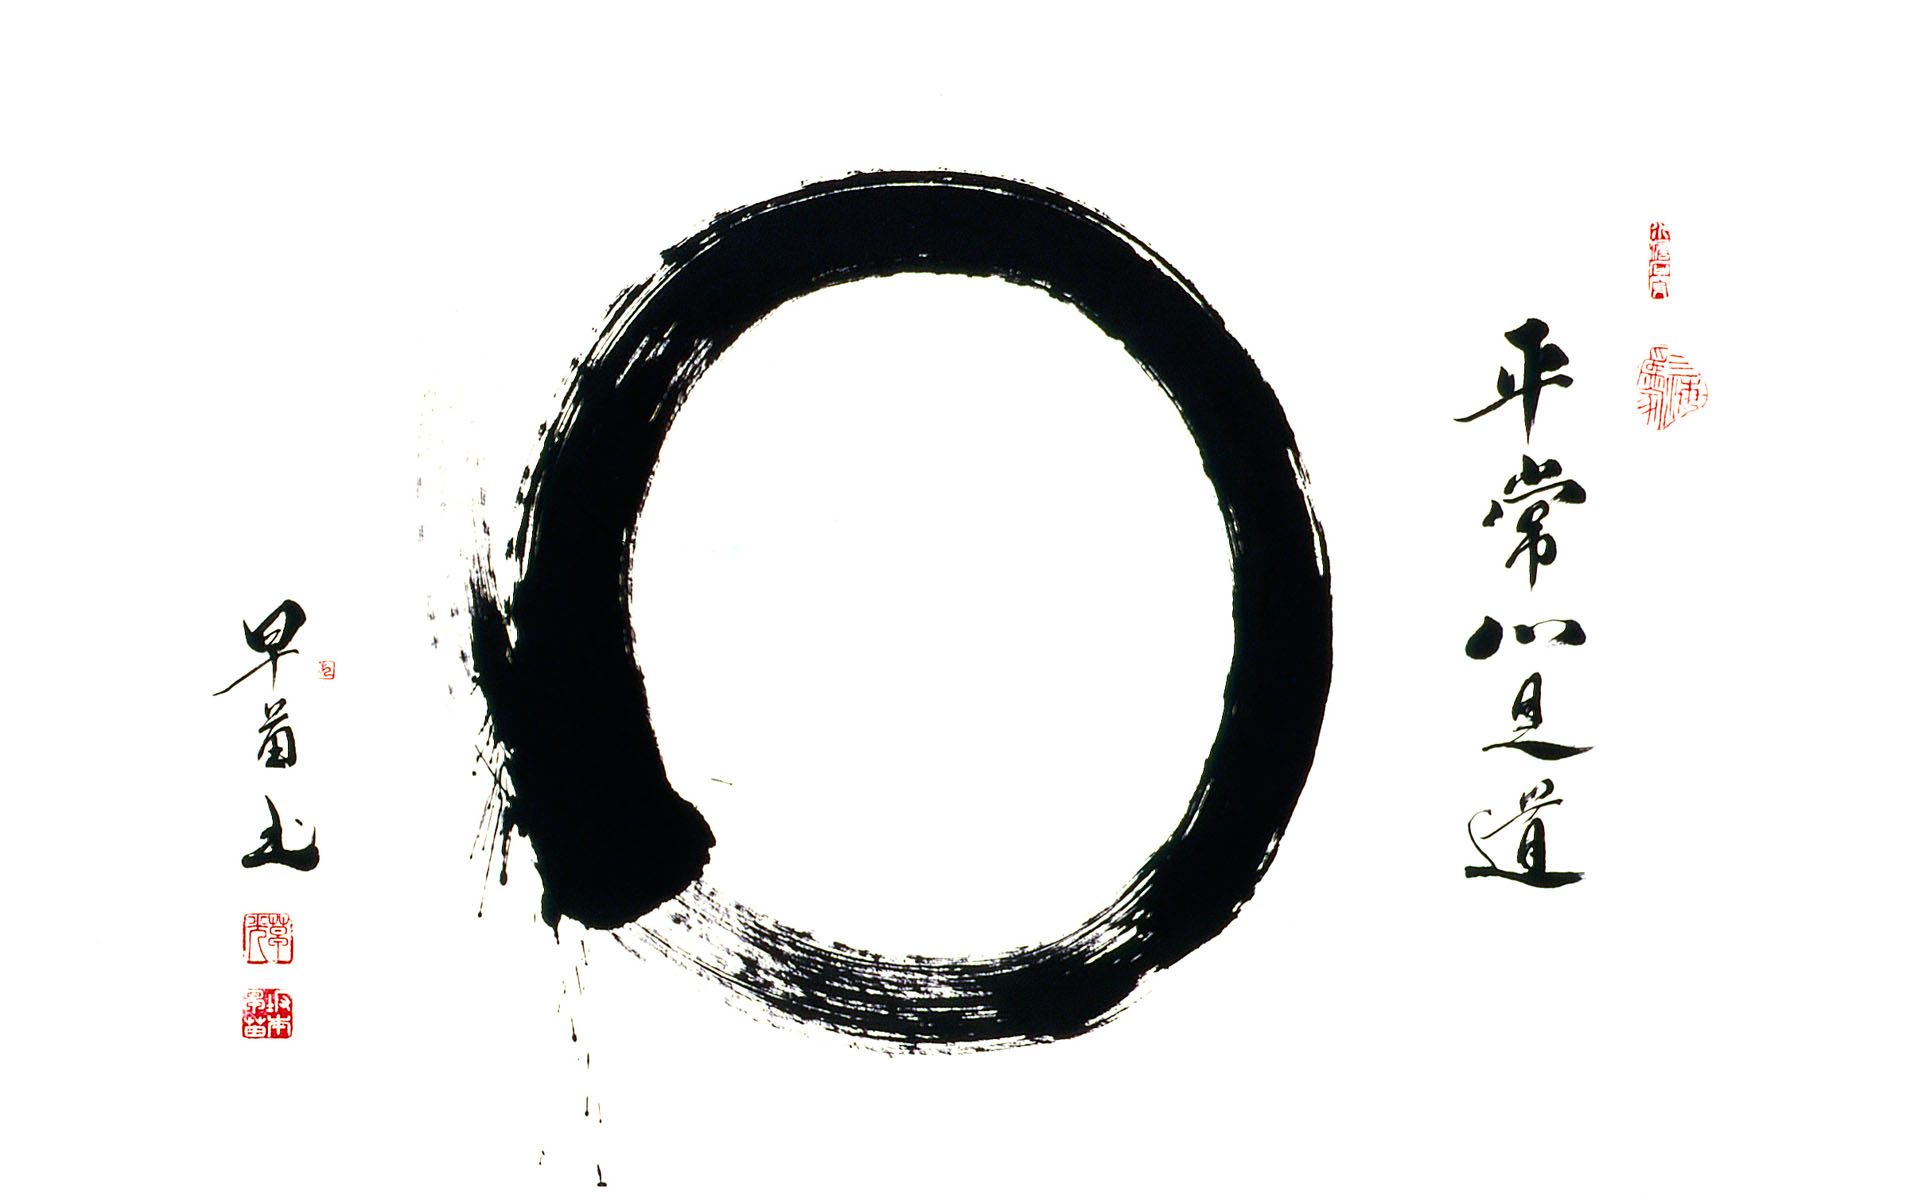 46 Zen Hd Wallpapers Backgrounds Wallpaper Abyss Page 2